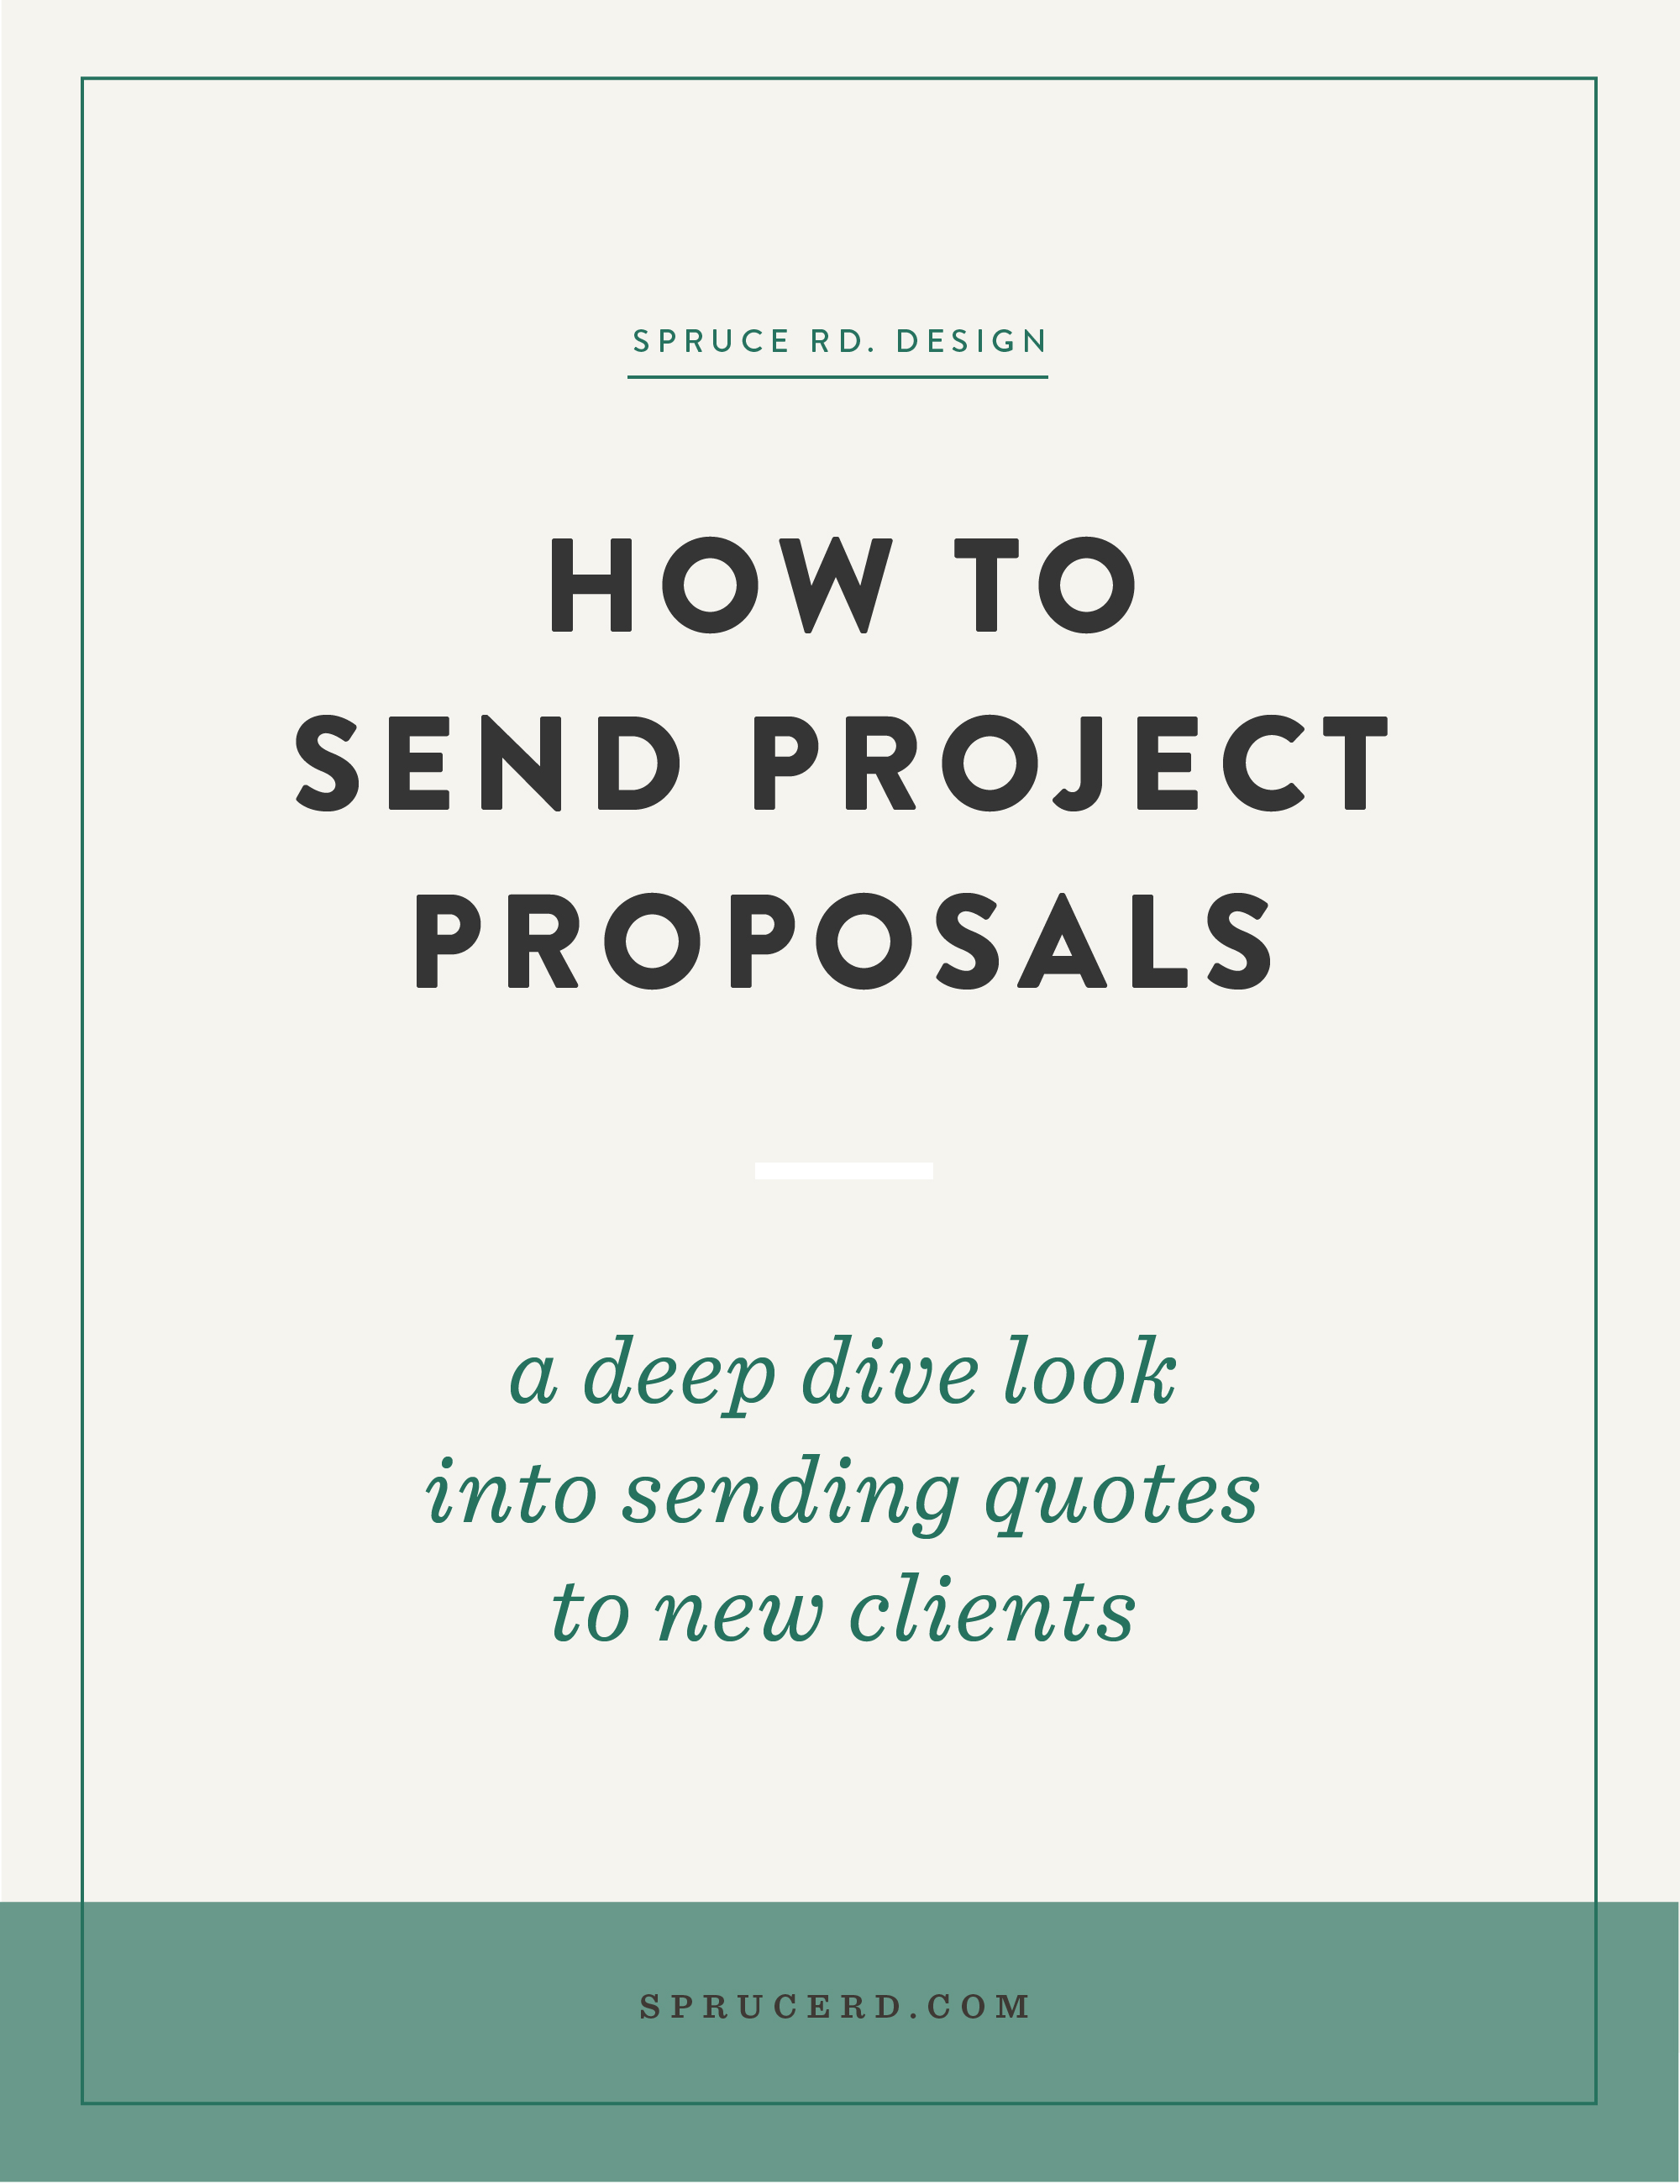 How to send project proposals   Spruce Rd.   There are a million ways to book clients and wow them with your proposals, and I've learned a thing or two over the years. What software to use? How to build in urgency? Here's exactly how we send quotes to prospective clients.